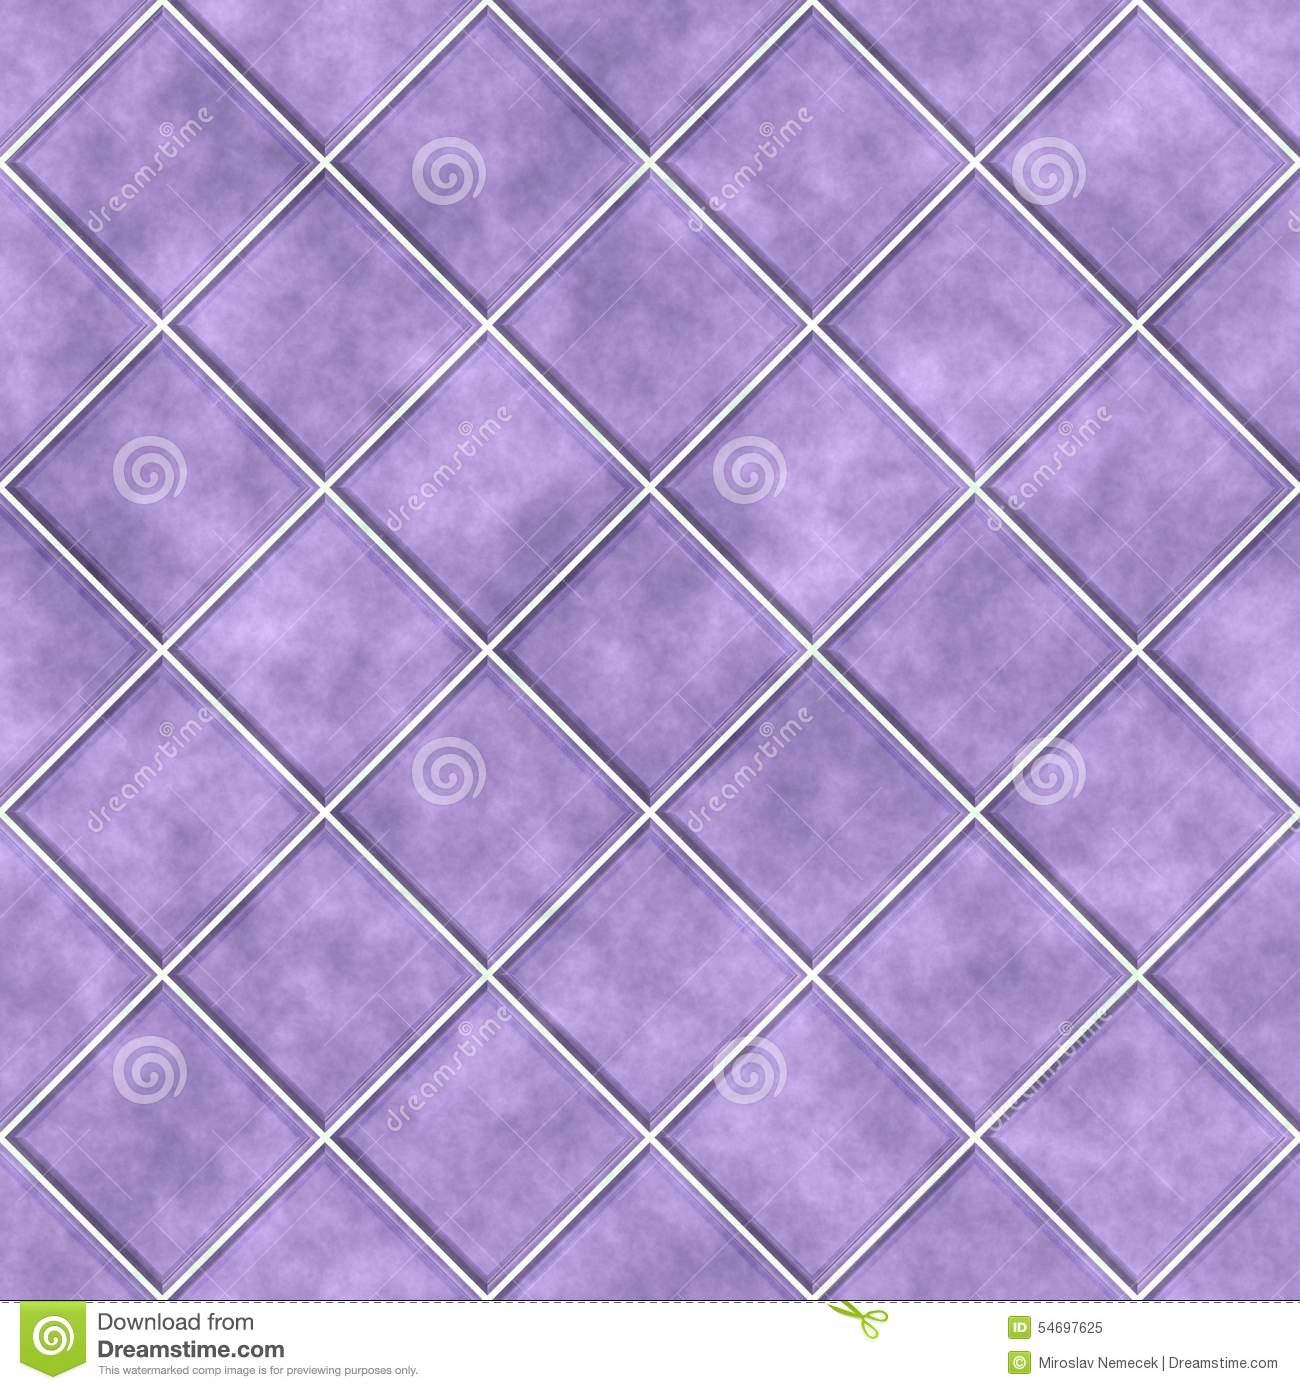 generated seamless tile background - photo #8